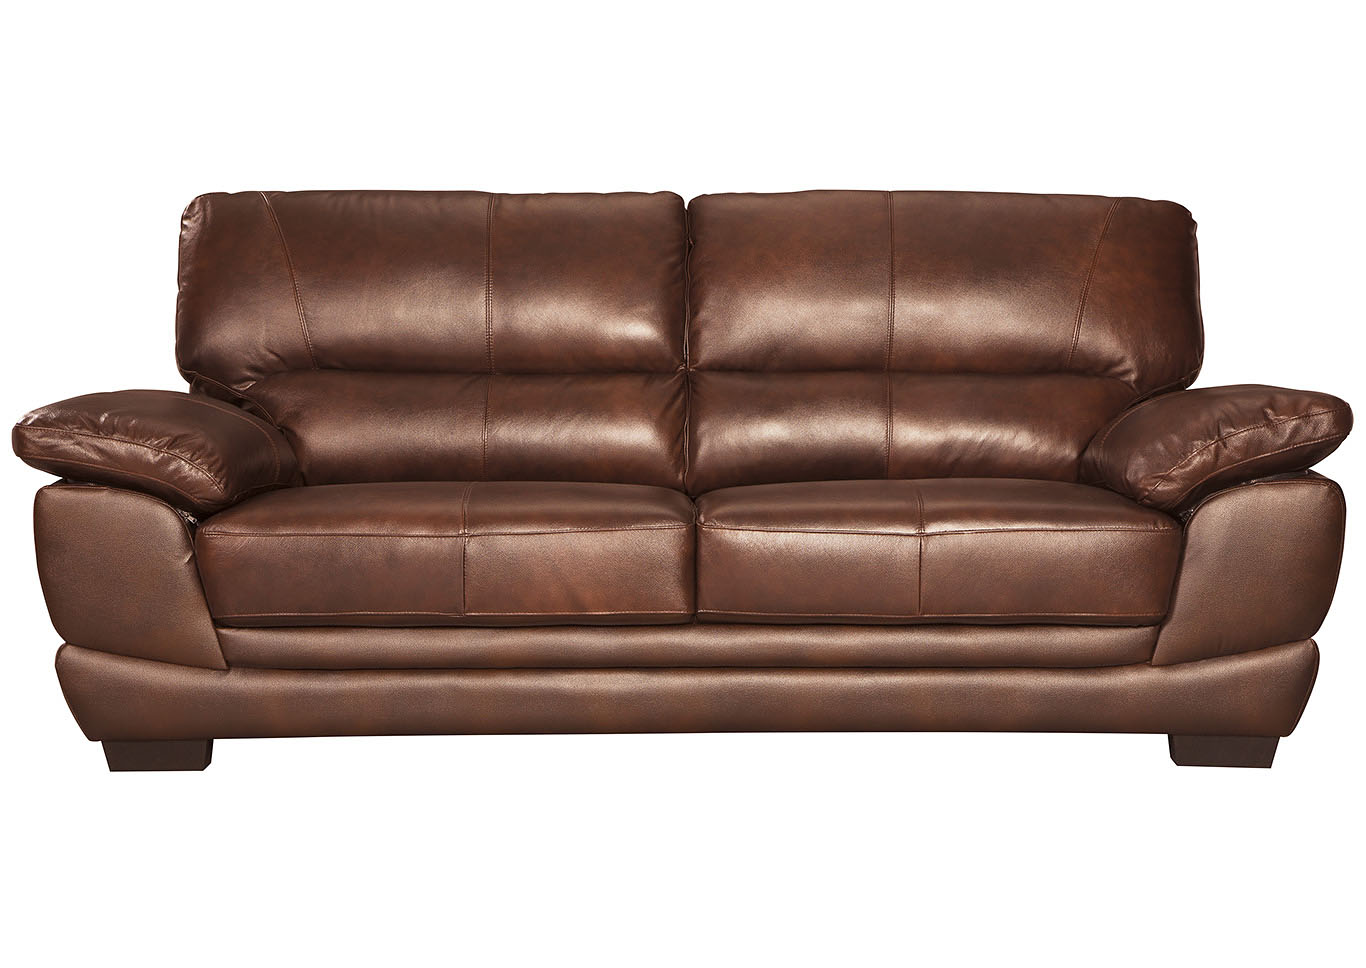 Fontenot Chocolate Sofa,Signature Design By Ashley